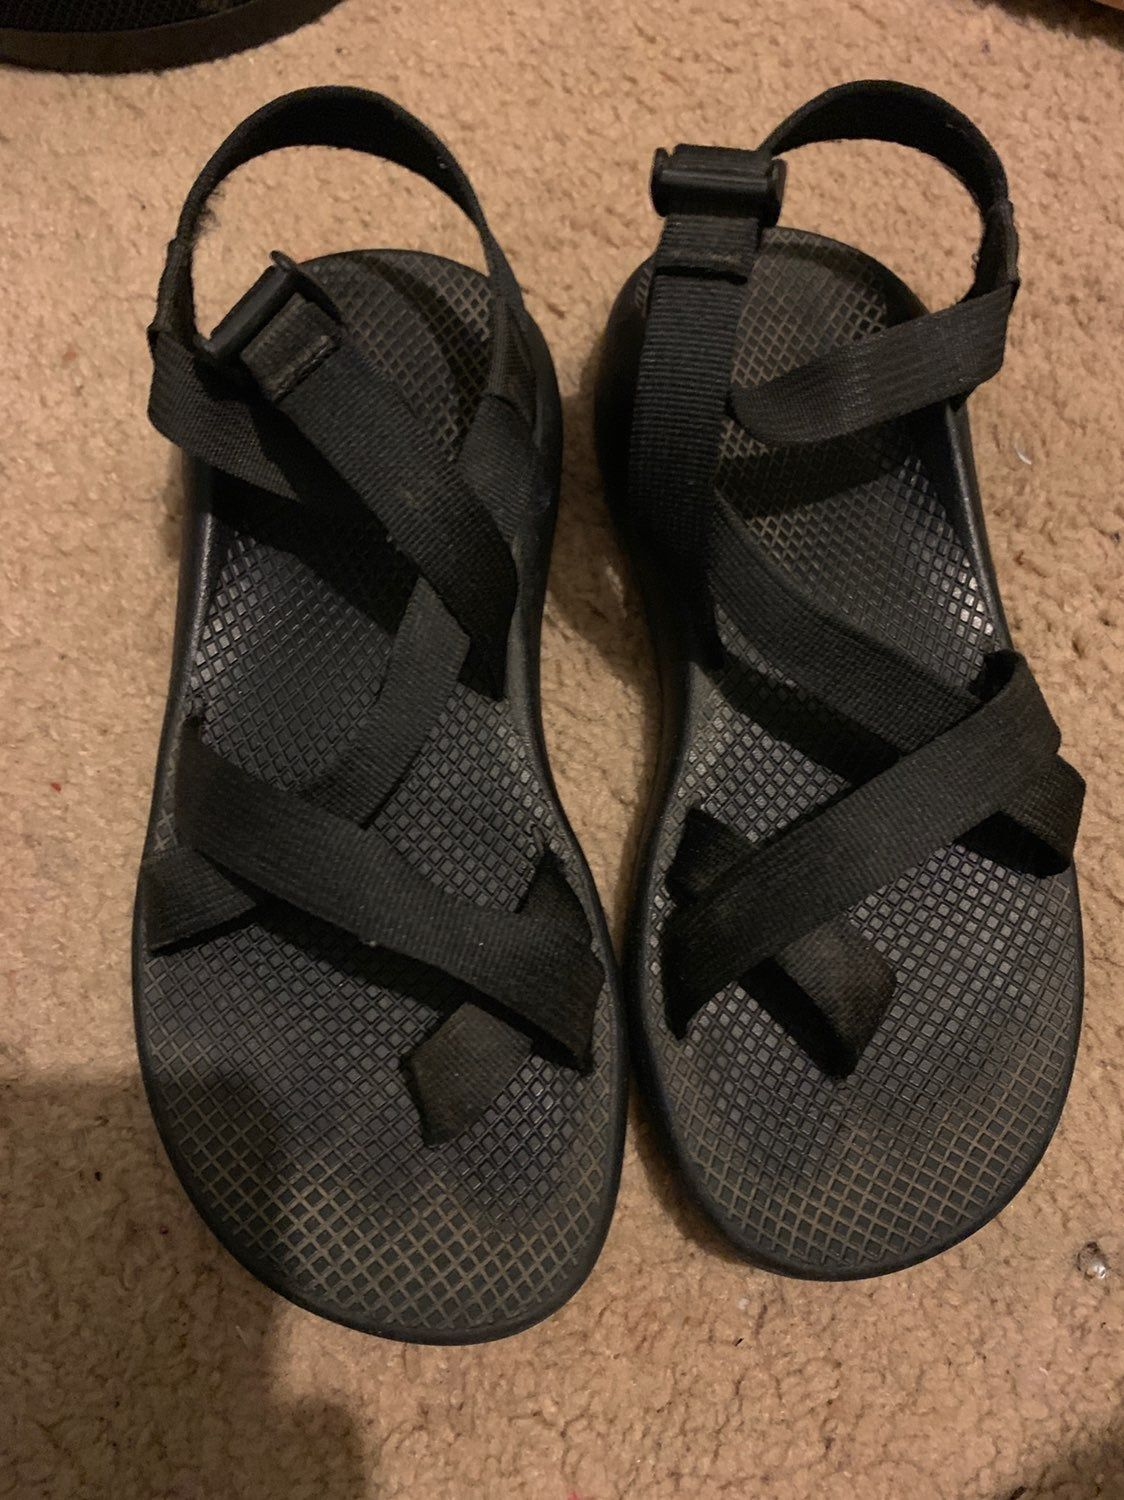 I M Selling These Black Chaco Sandals With Black Straps And Toe Divider They Are A Size 10 But In My Opinion Fit More Like A 9 Chacos Sandals Sandals Chacos